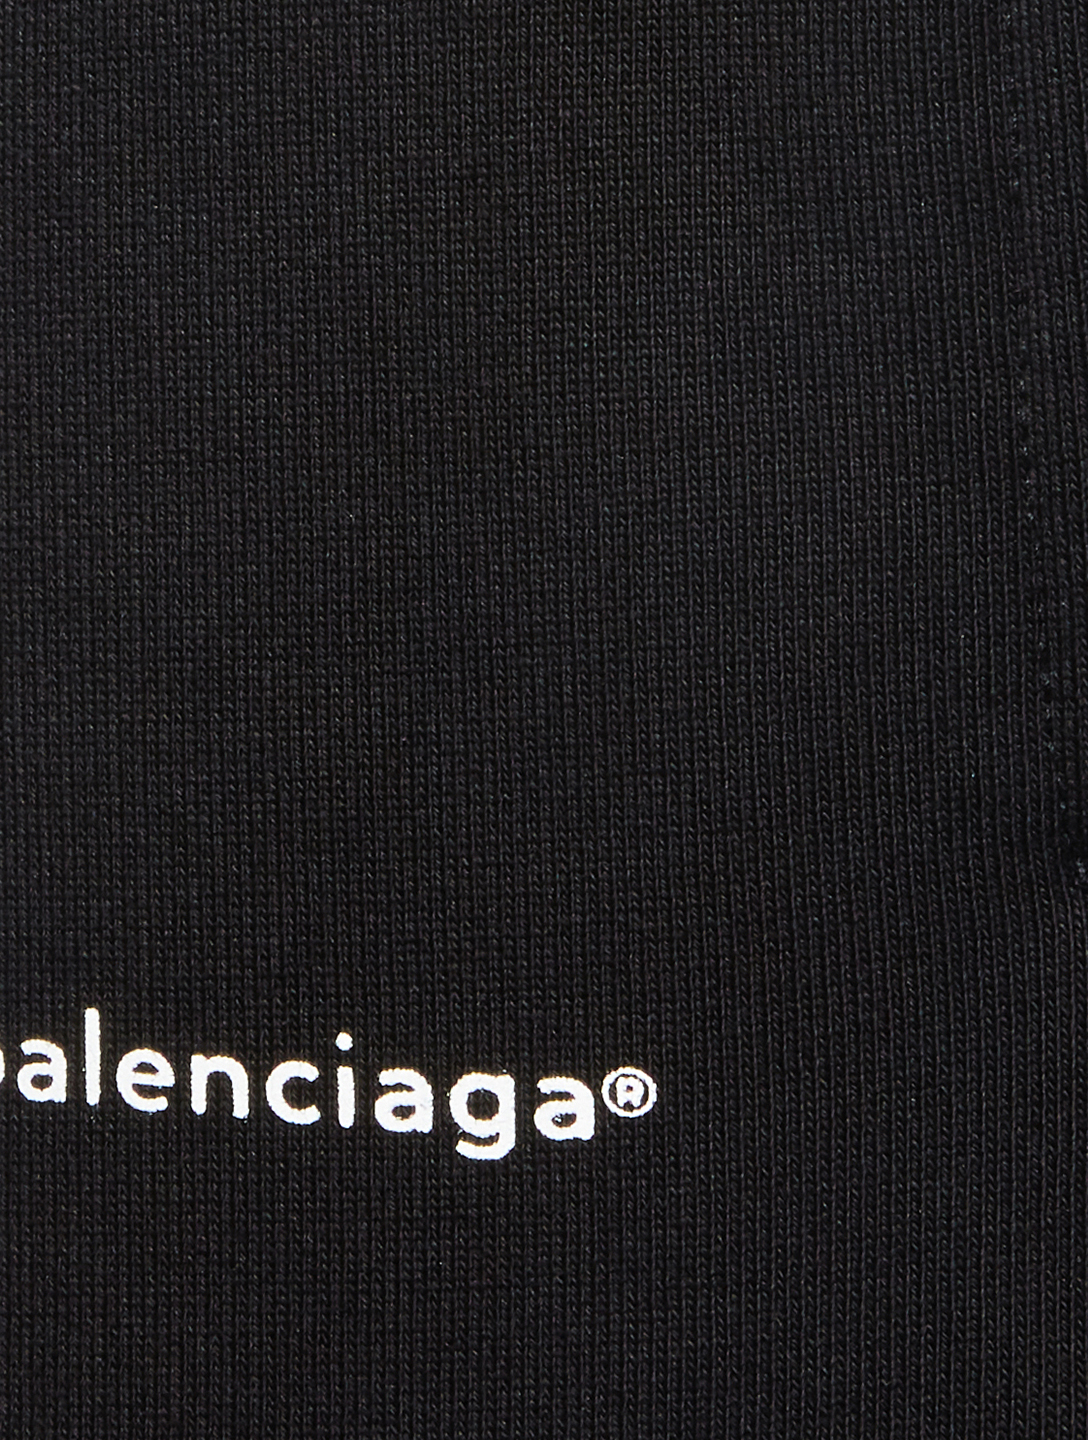 116fe63eb8da32 ... BALENCIAGA Copyright Logo Sweatpants Men's Black